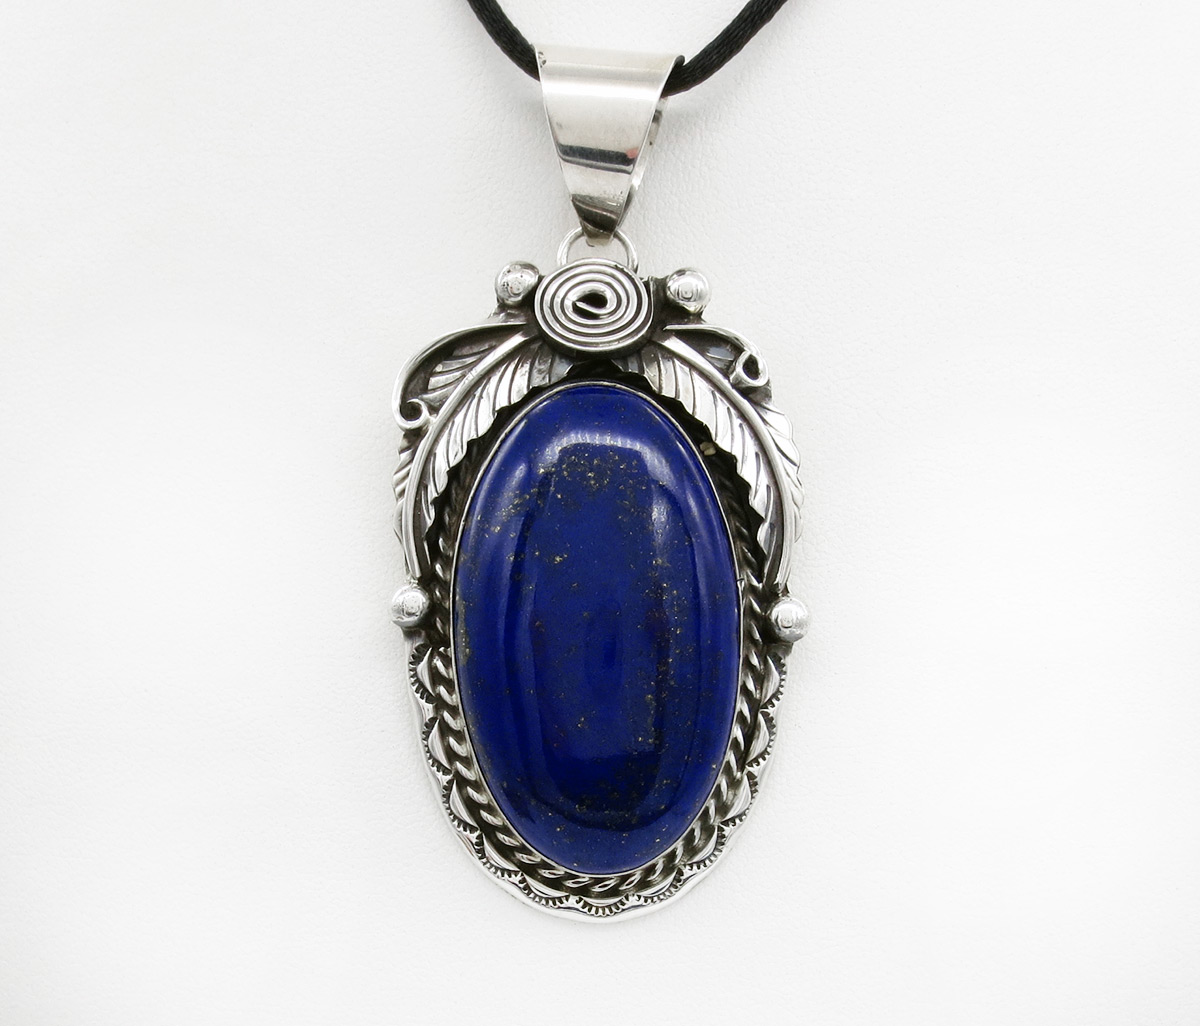 Large Lapis Lazuli & Sterling Silver Pendant Navajo Jewelry - 2157dt